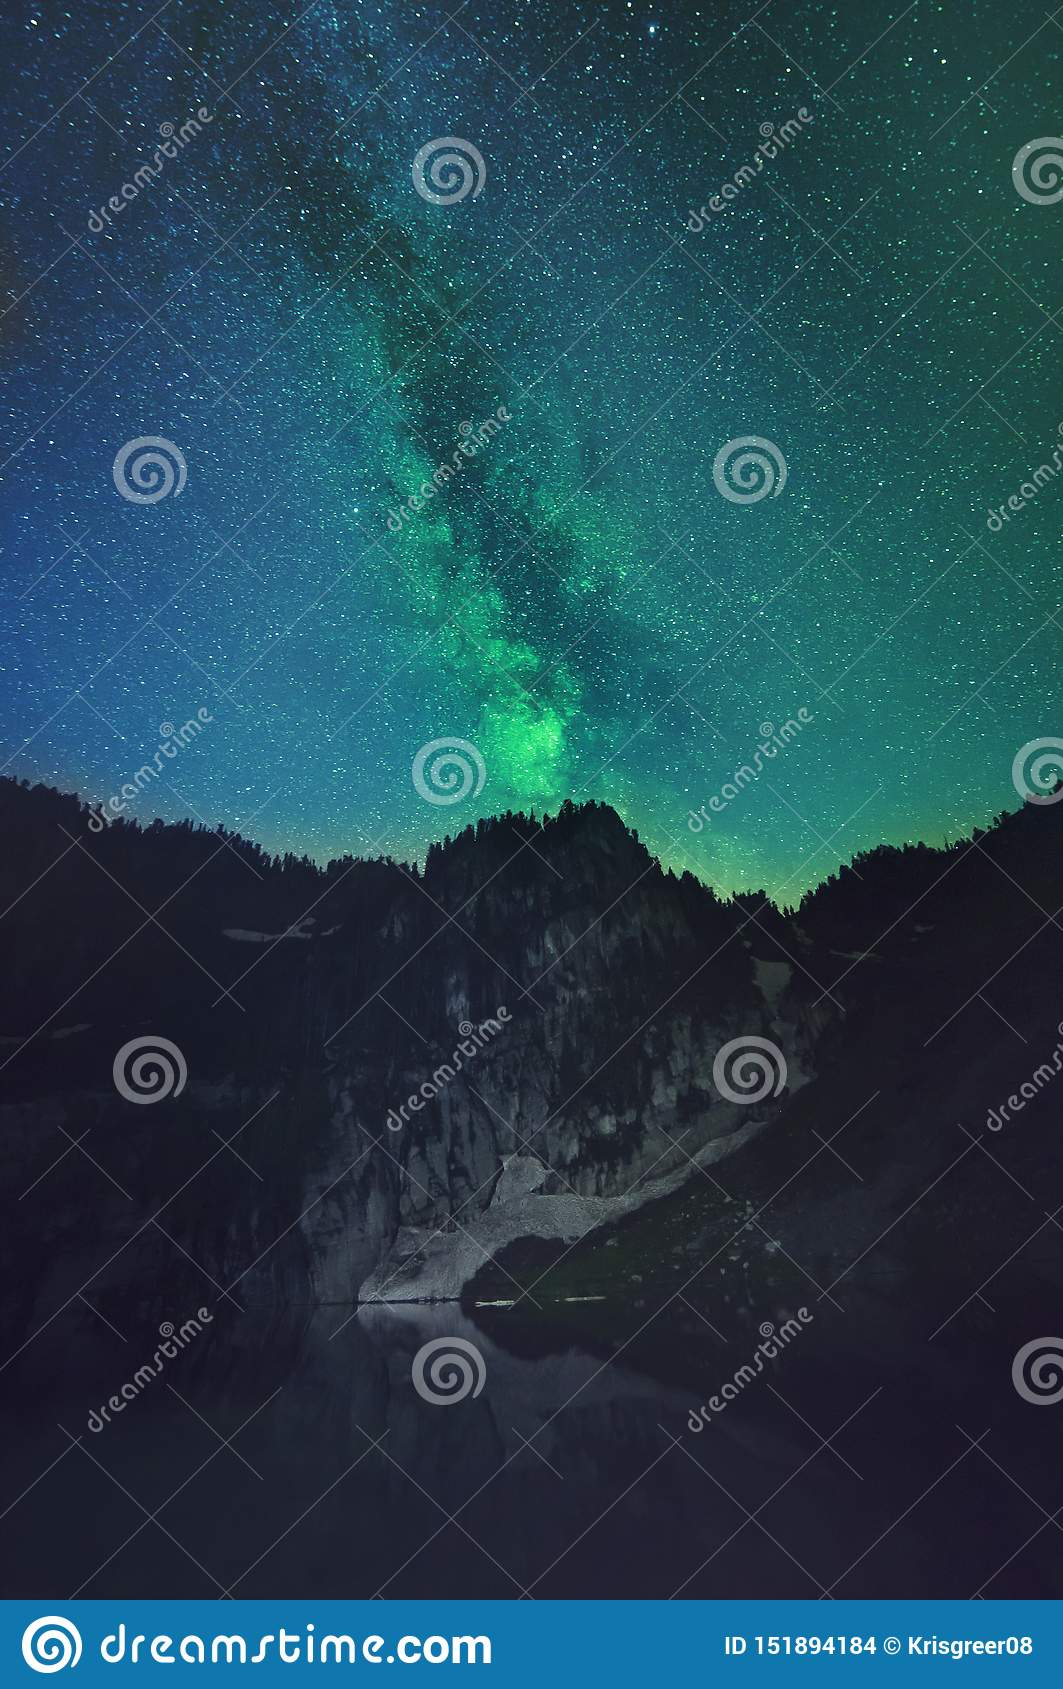 Mountain landscape with milky way visible behind it